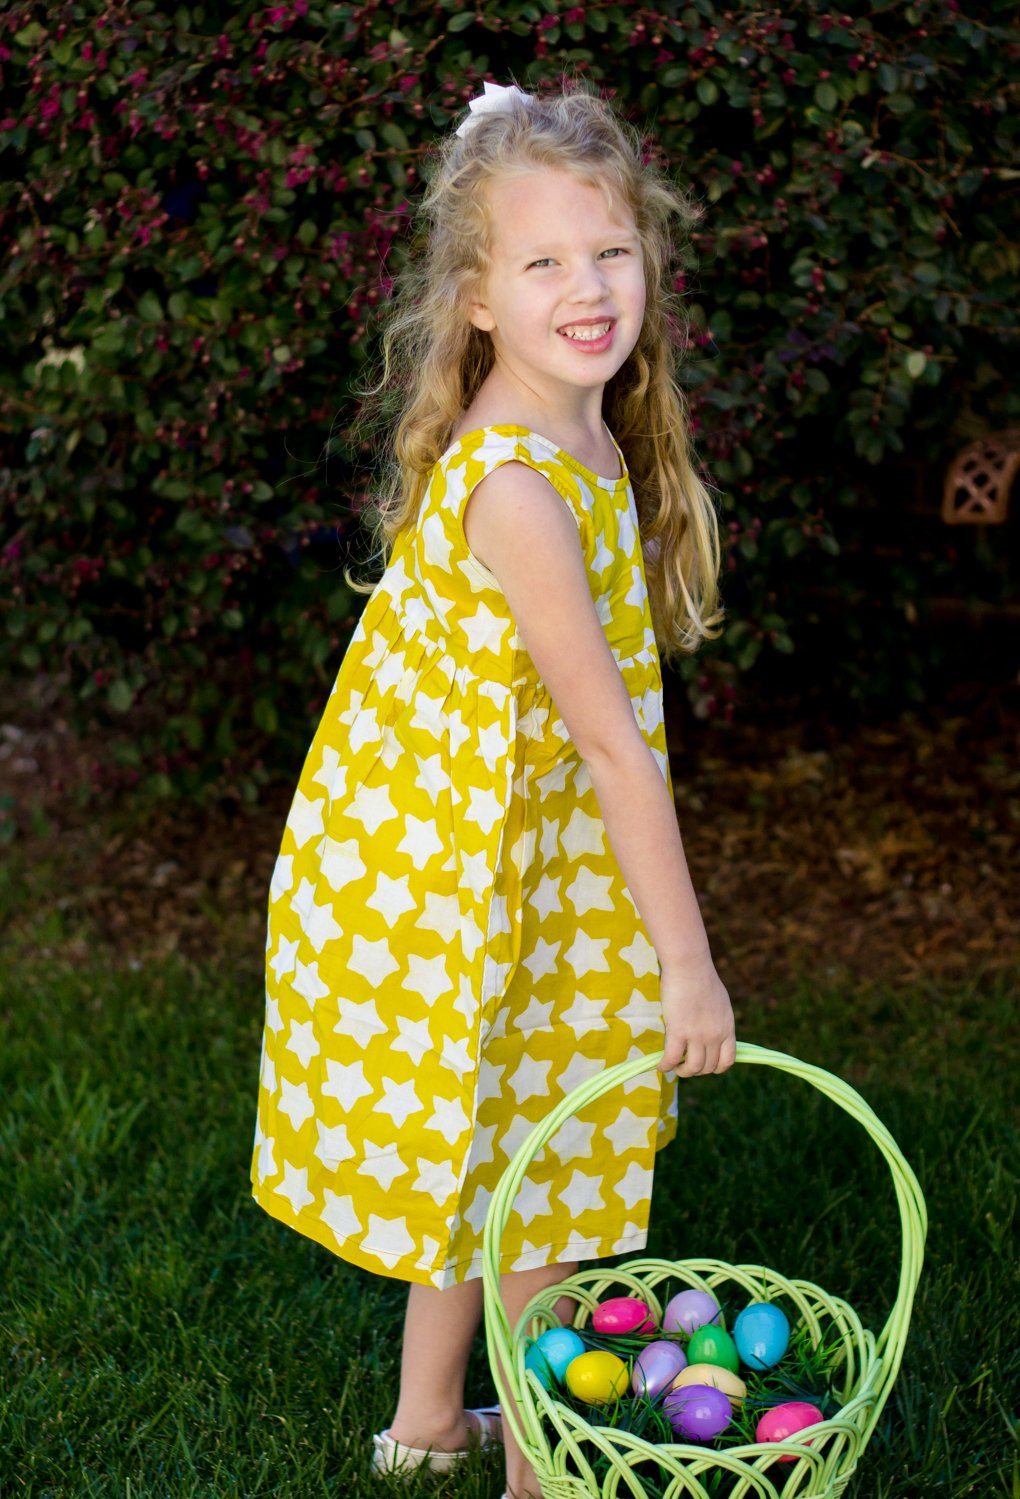 Easter Fashion Guide for Children 2017 88 Daily Mom Parents Portal